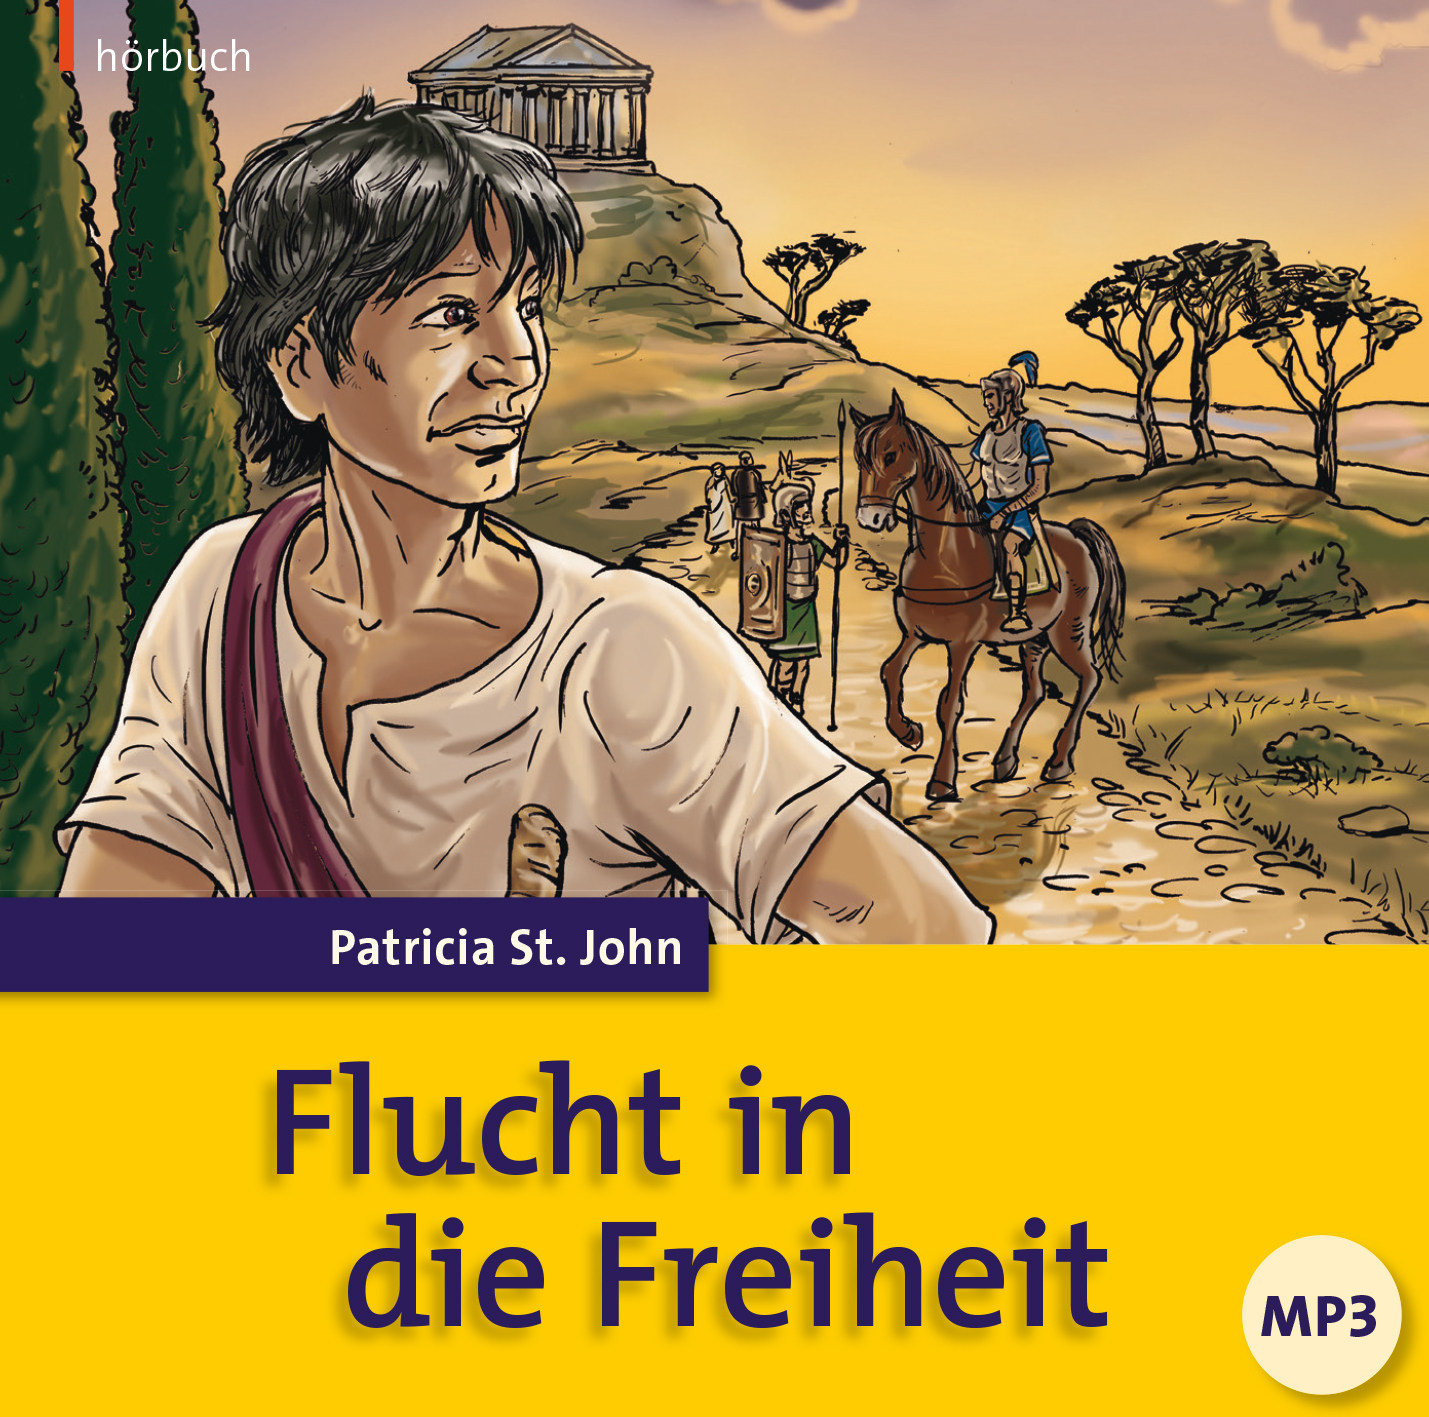 DOWNLOAD: Flucht in die Freiheit (Hörbuch [MP3])